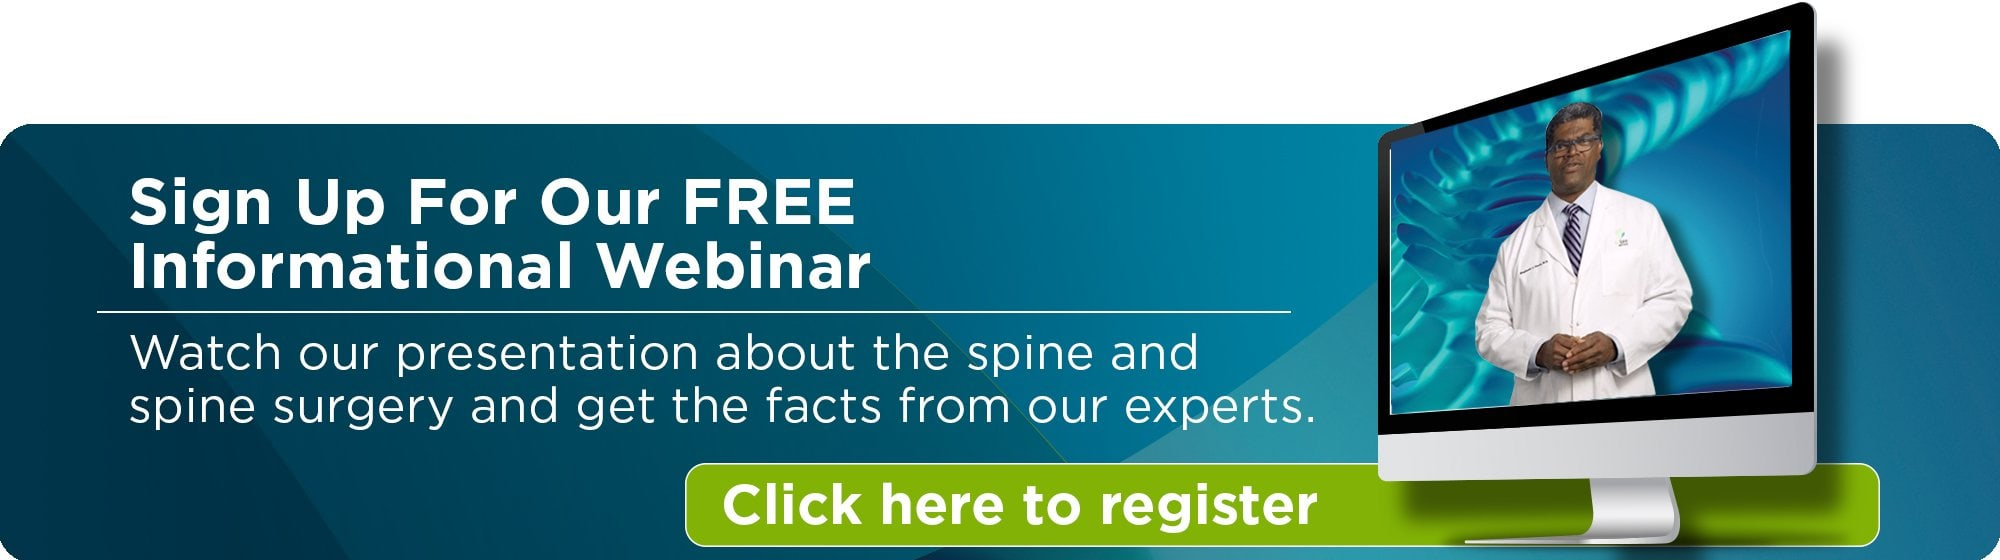 Sign Up for Our Free Informational Webinar - Watch our presentation about the spine and spine surgery and get the facts from our experts - Click here to register